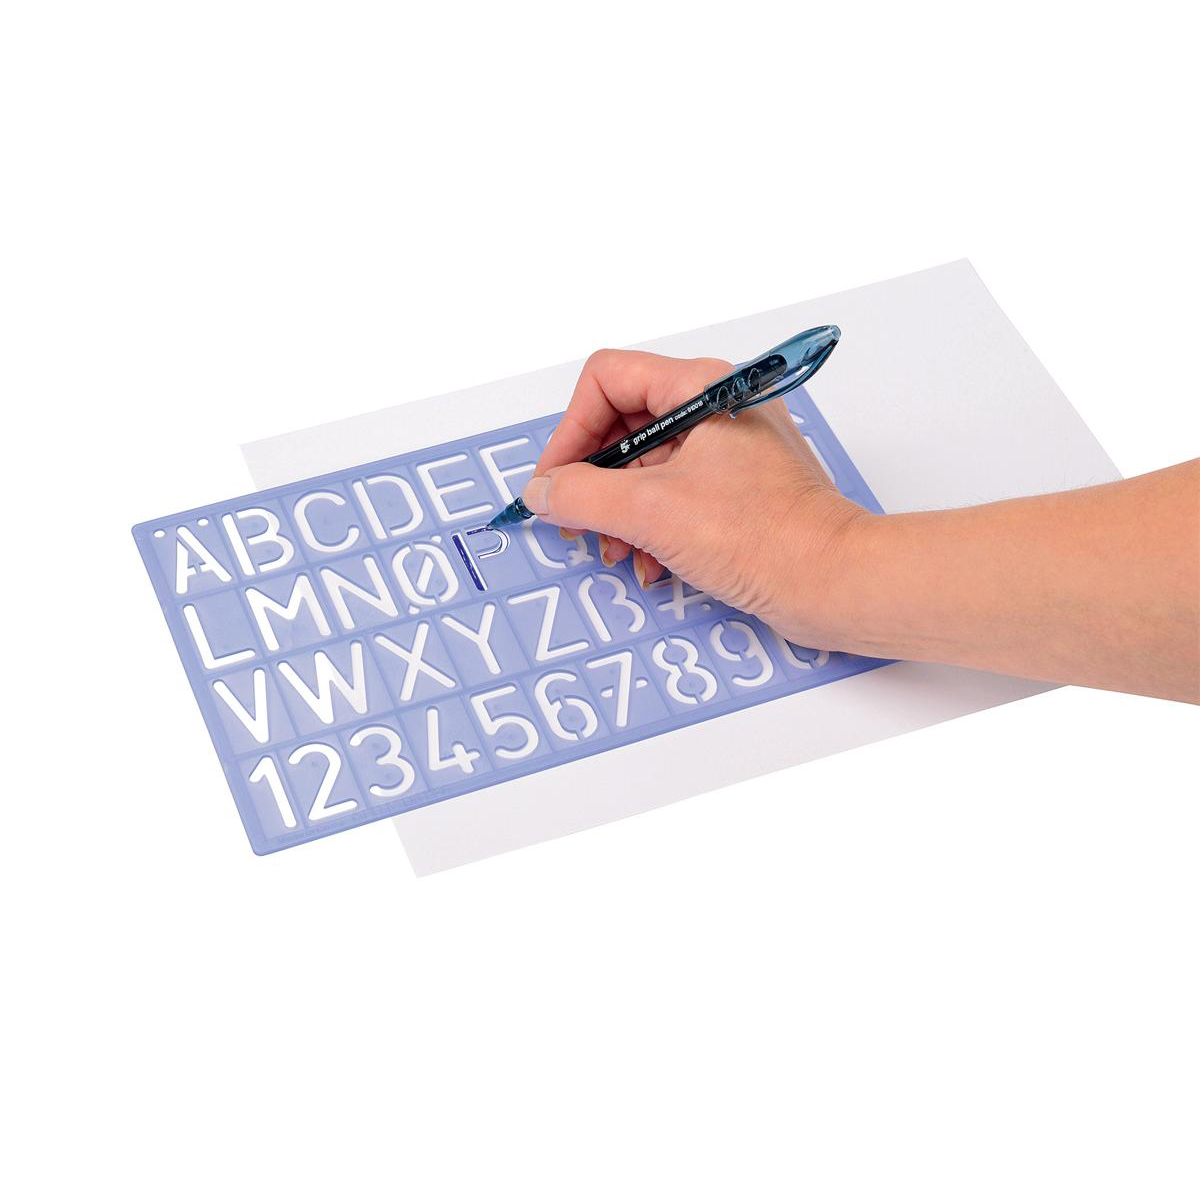 Stencil Pack of Three Templates Letters/Numbers/Symbols ?/p 10/20/30mm with PVC Sleeve Blue Tint